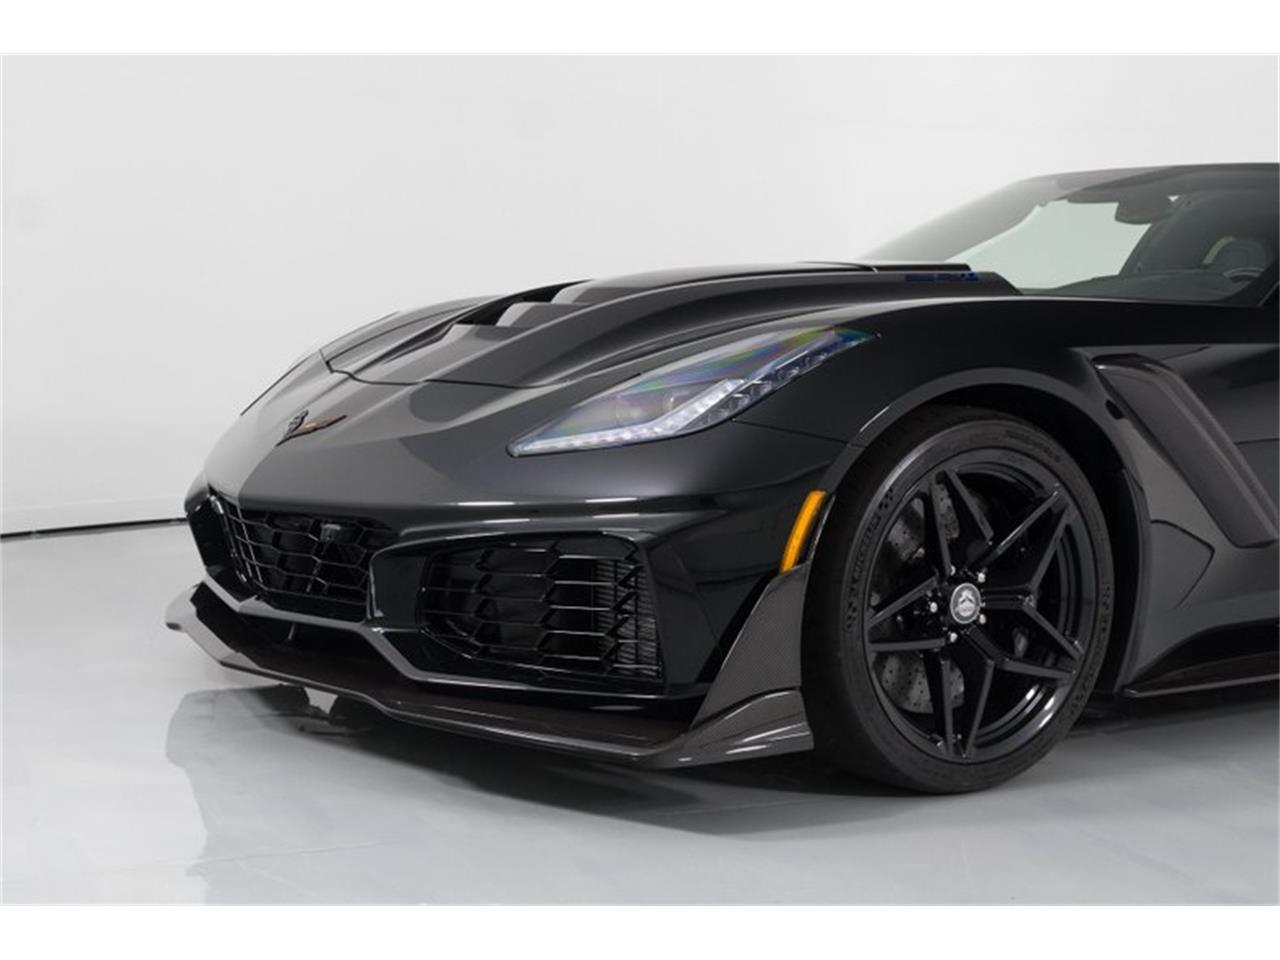 2019 Chevrolet Corvette ZR1 for sale in St. Charles, MO – photo 5